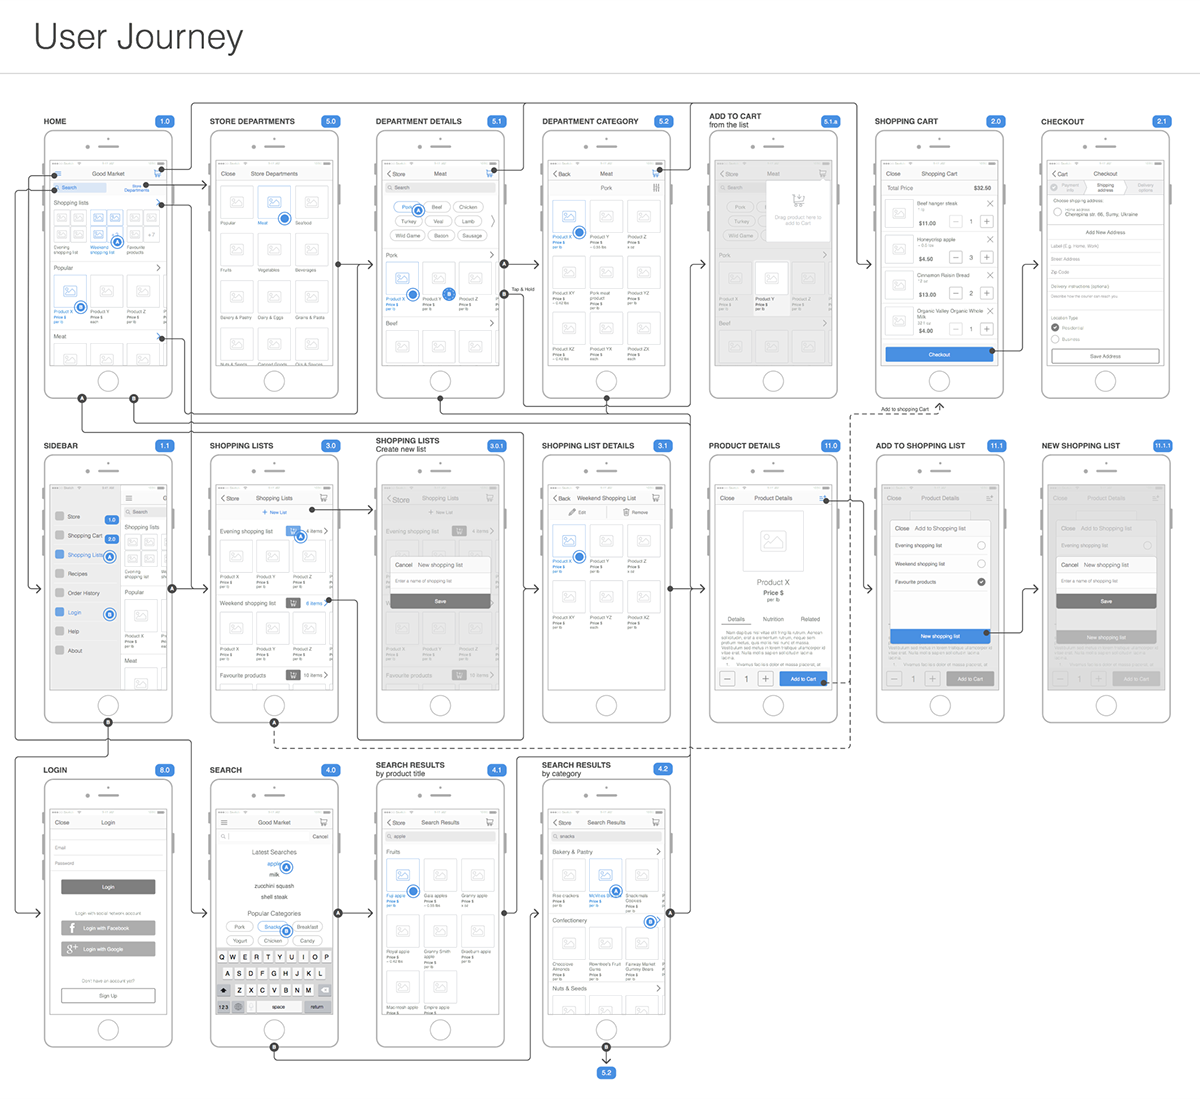 ux wireframes for mobile app of online grocery shopping delivery service made based on - Wireframe Design Tool Online